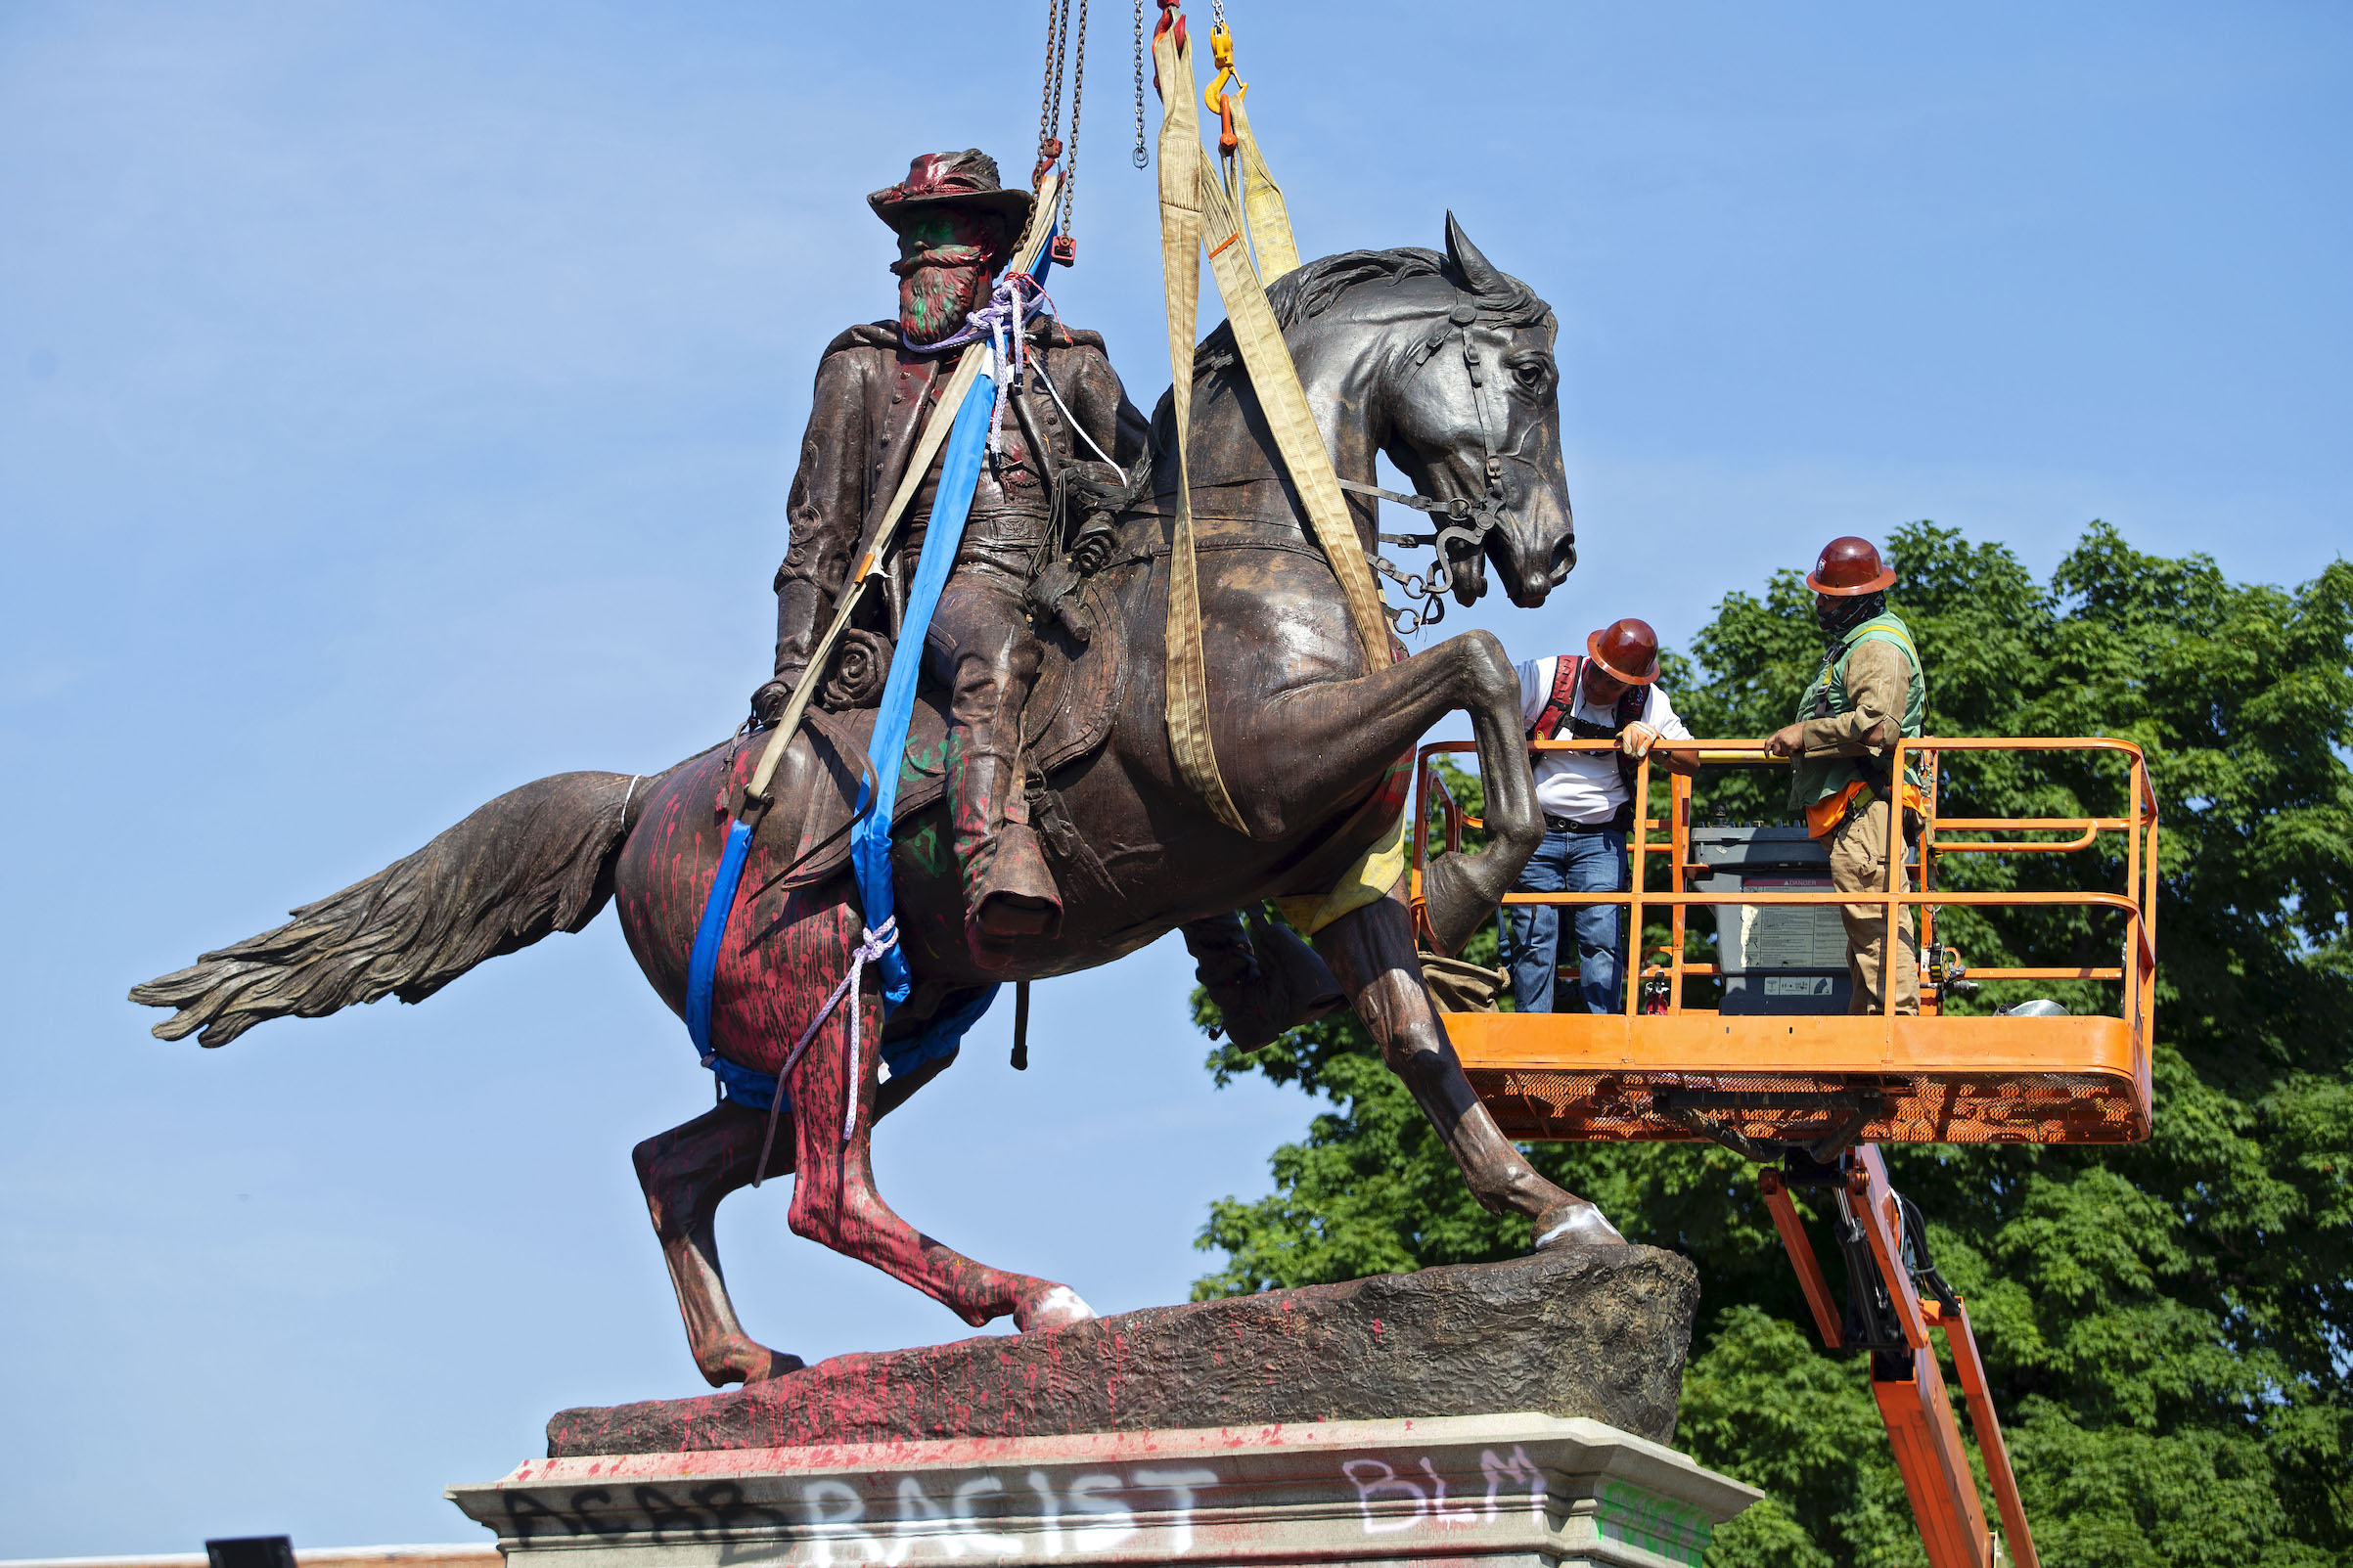 The statue of Confederate General J.E.B. Stuart is removed from Monument Avenue in Richmond, Va., on July 7, 2020